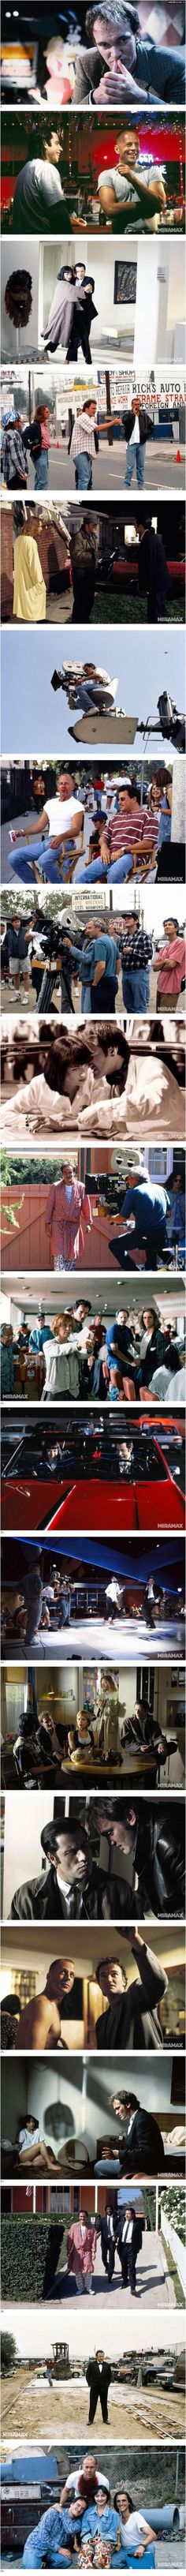 Quentin Tarantino on the set of Pulp Fiction.